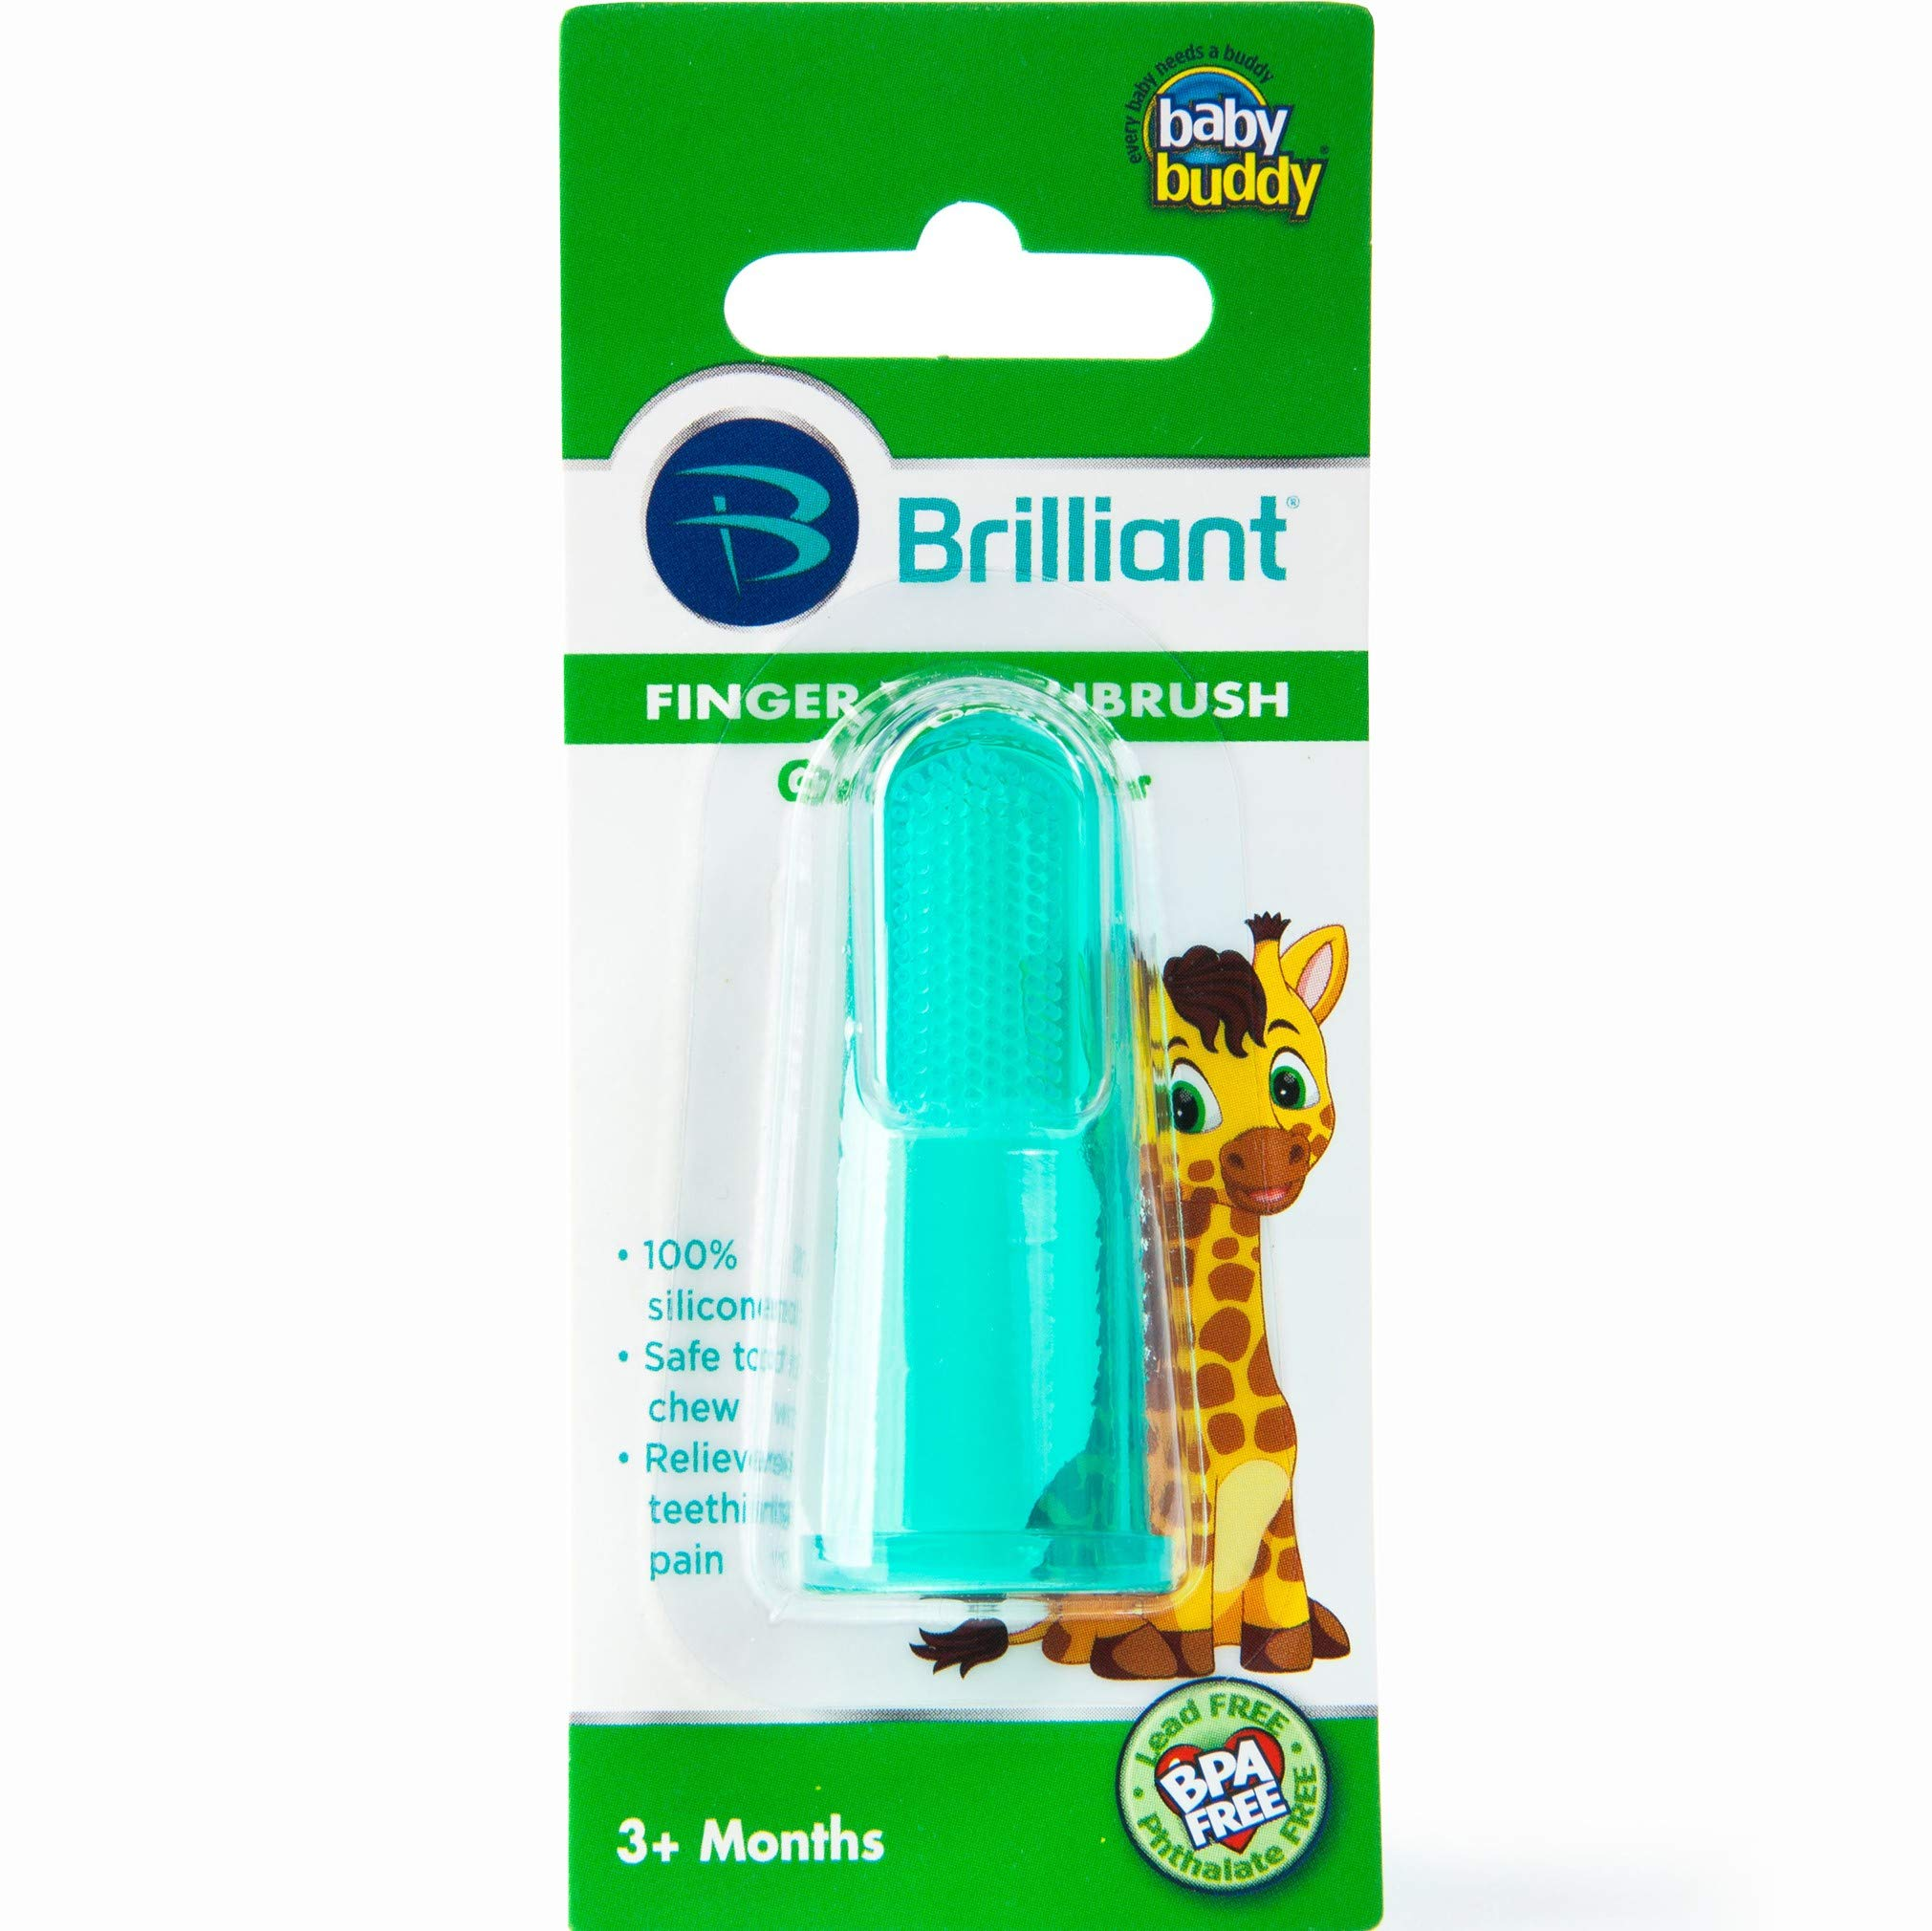 Brilliant Baby Finger Toothbrush - Silicone Gum Massager and Teether Brush for Babies and Toddlers - Kids Love Them, Green, 1 Count